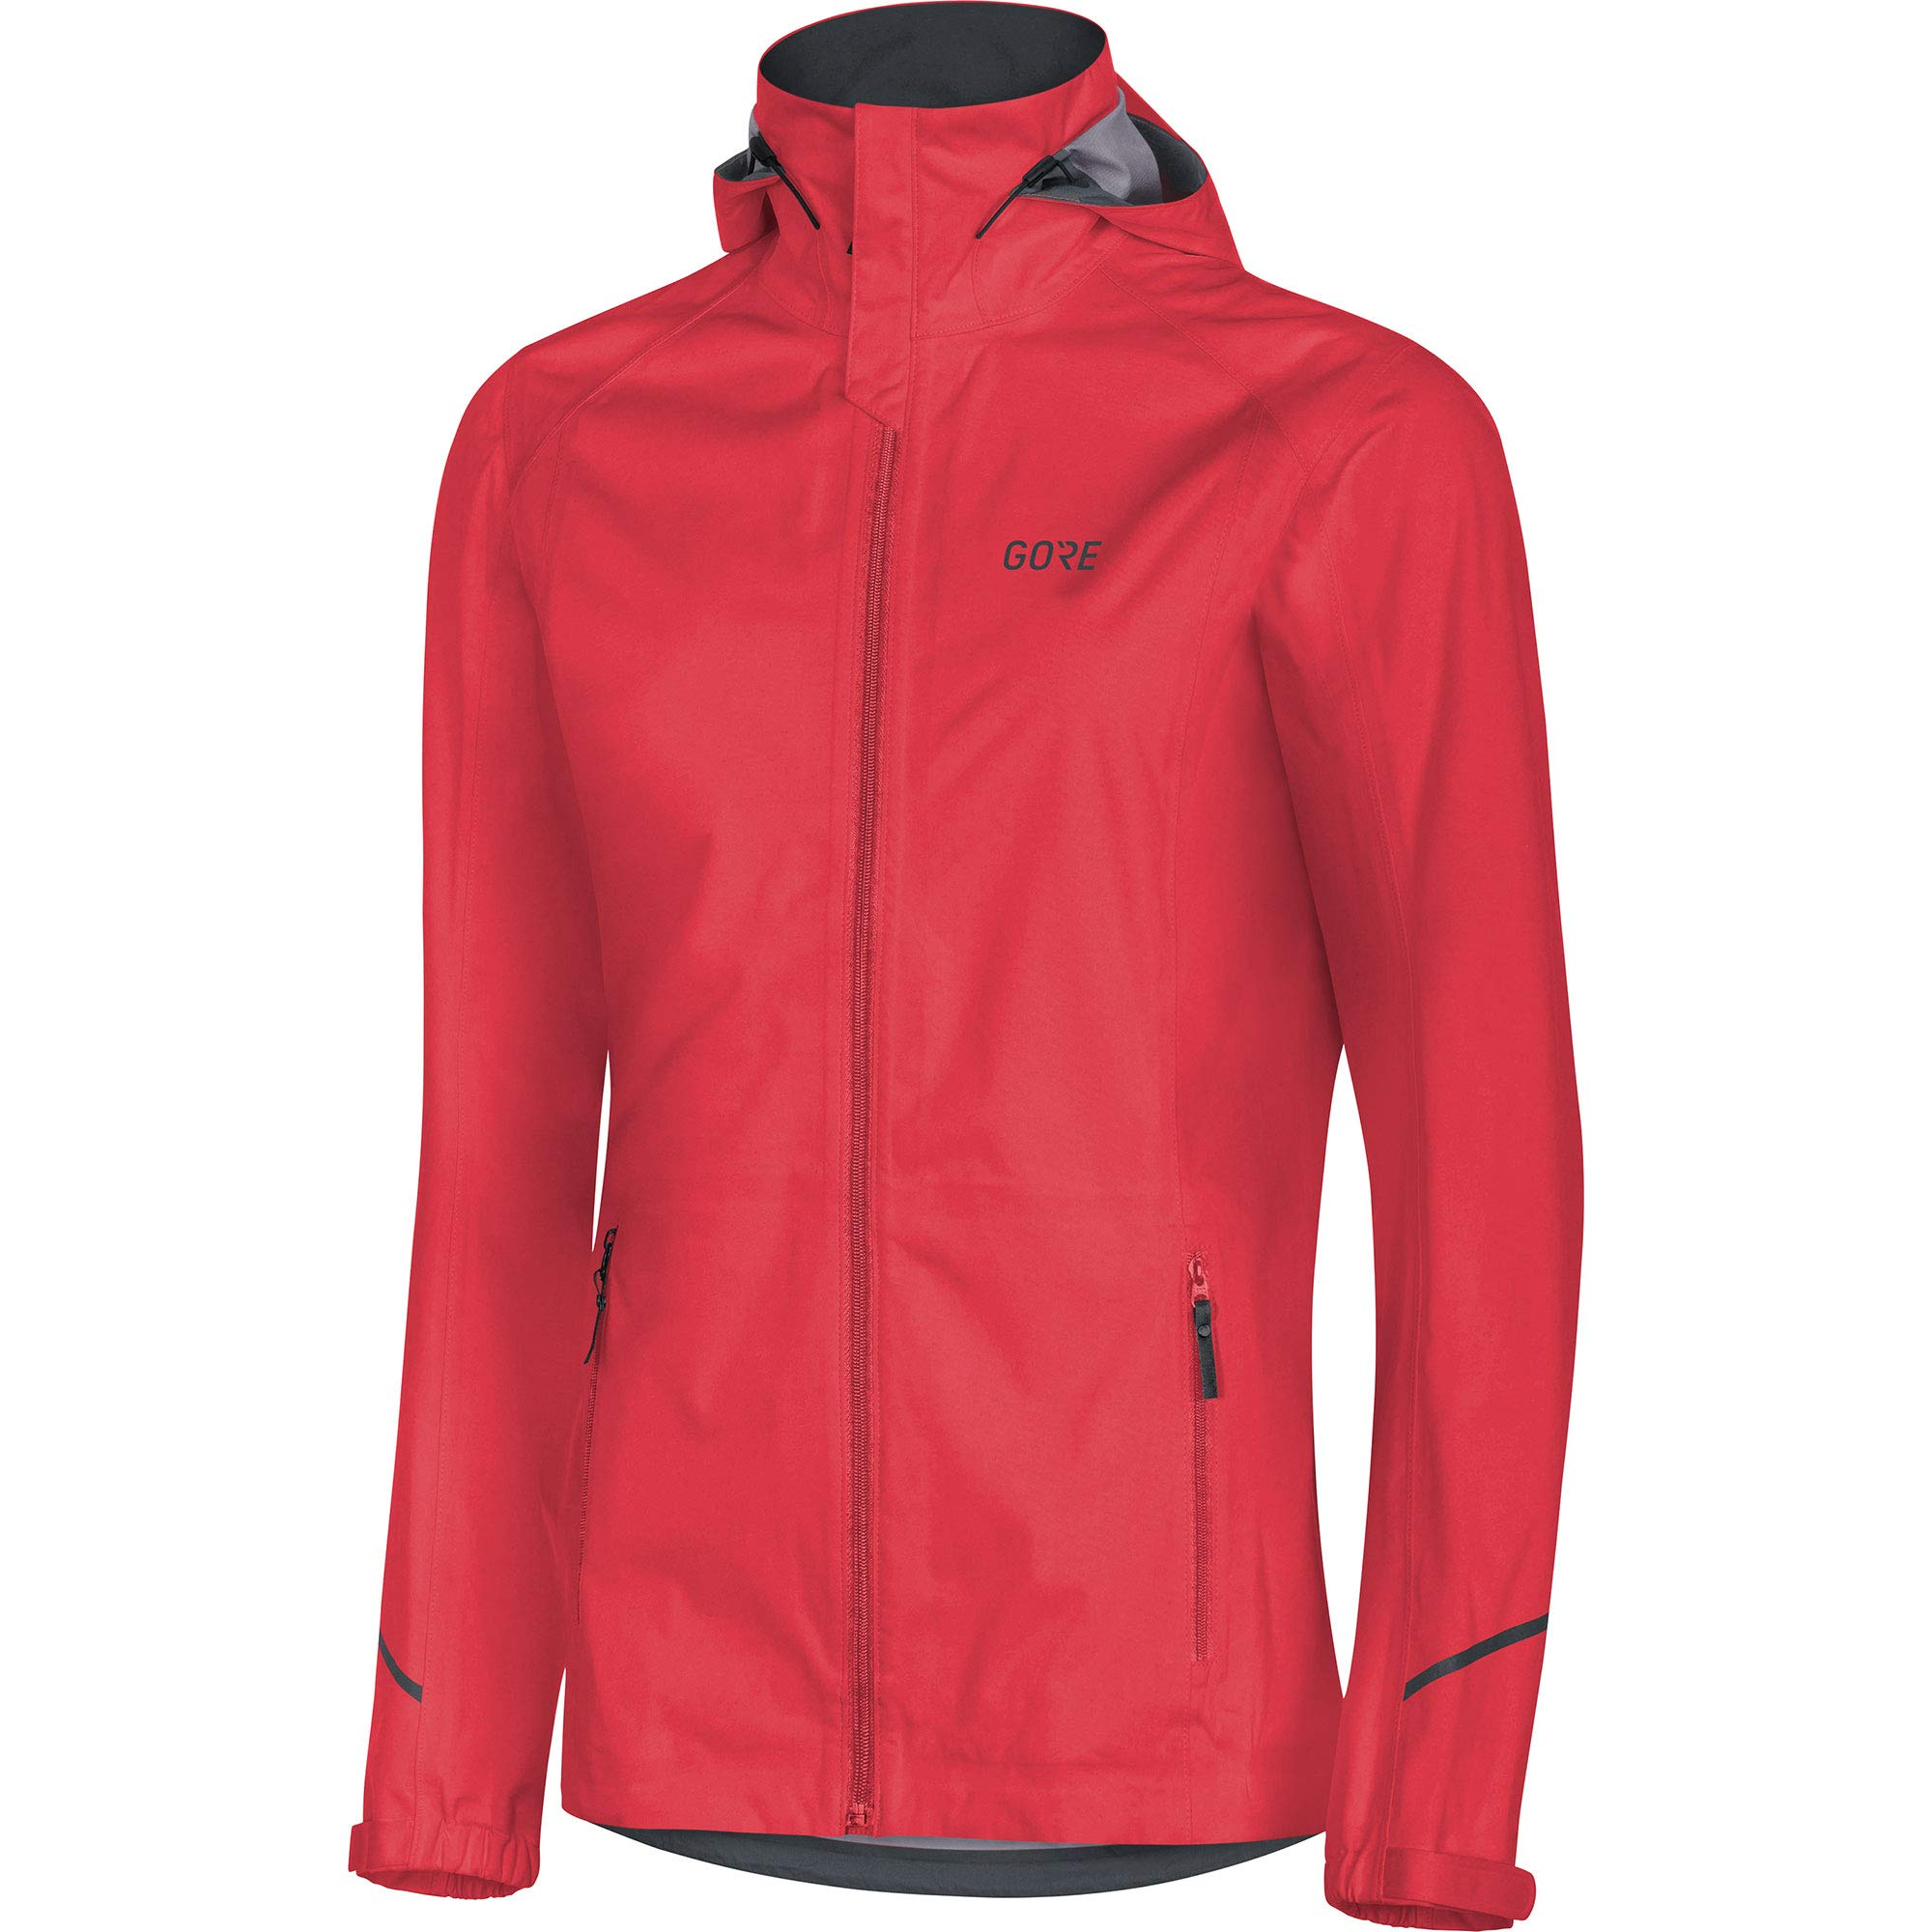 GORE Wear R3 Ladies Hooded Jacket GORE-TEX Active, XS, Rot